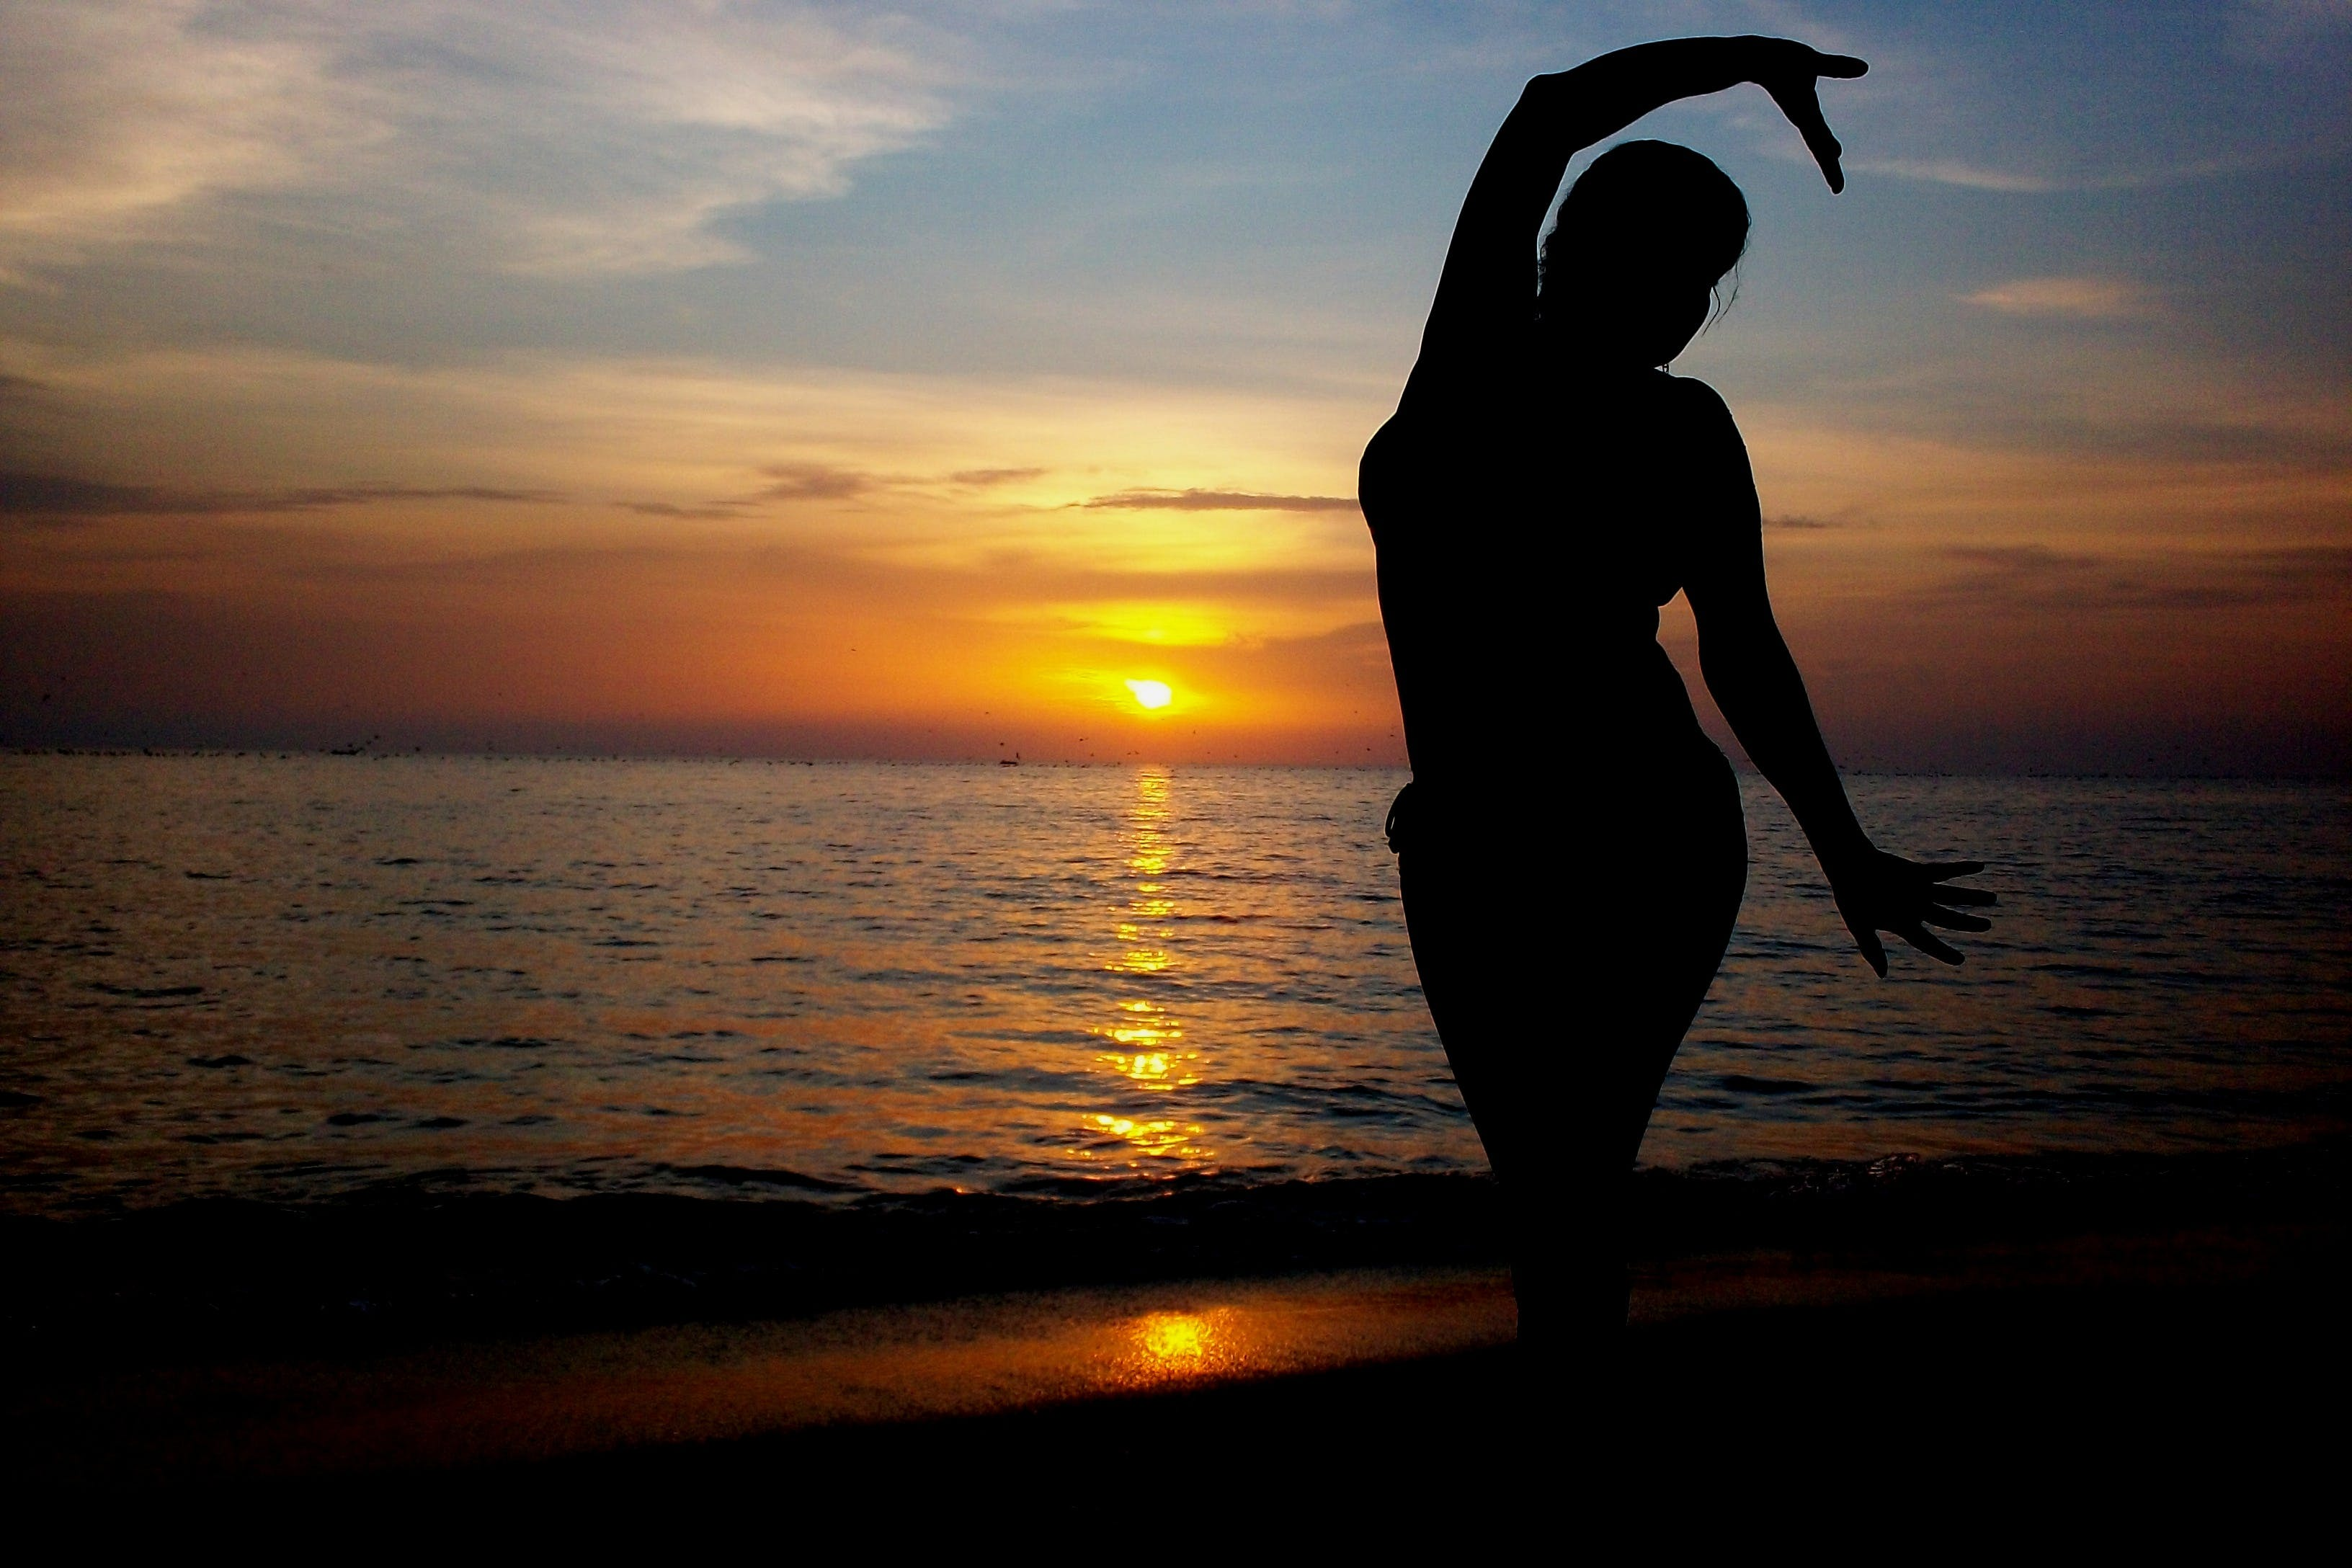 Silhouette of Standing Woman on Seashore during Sunset